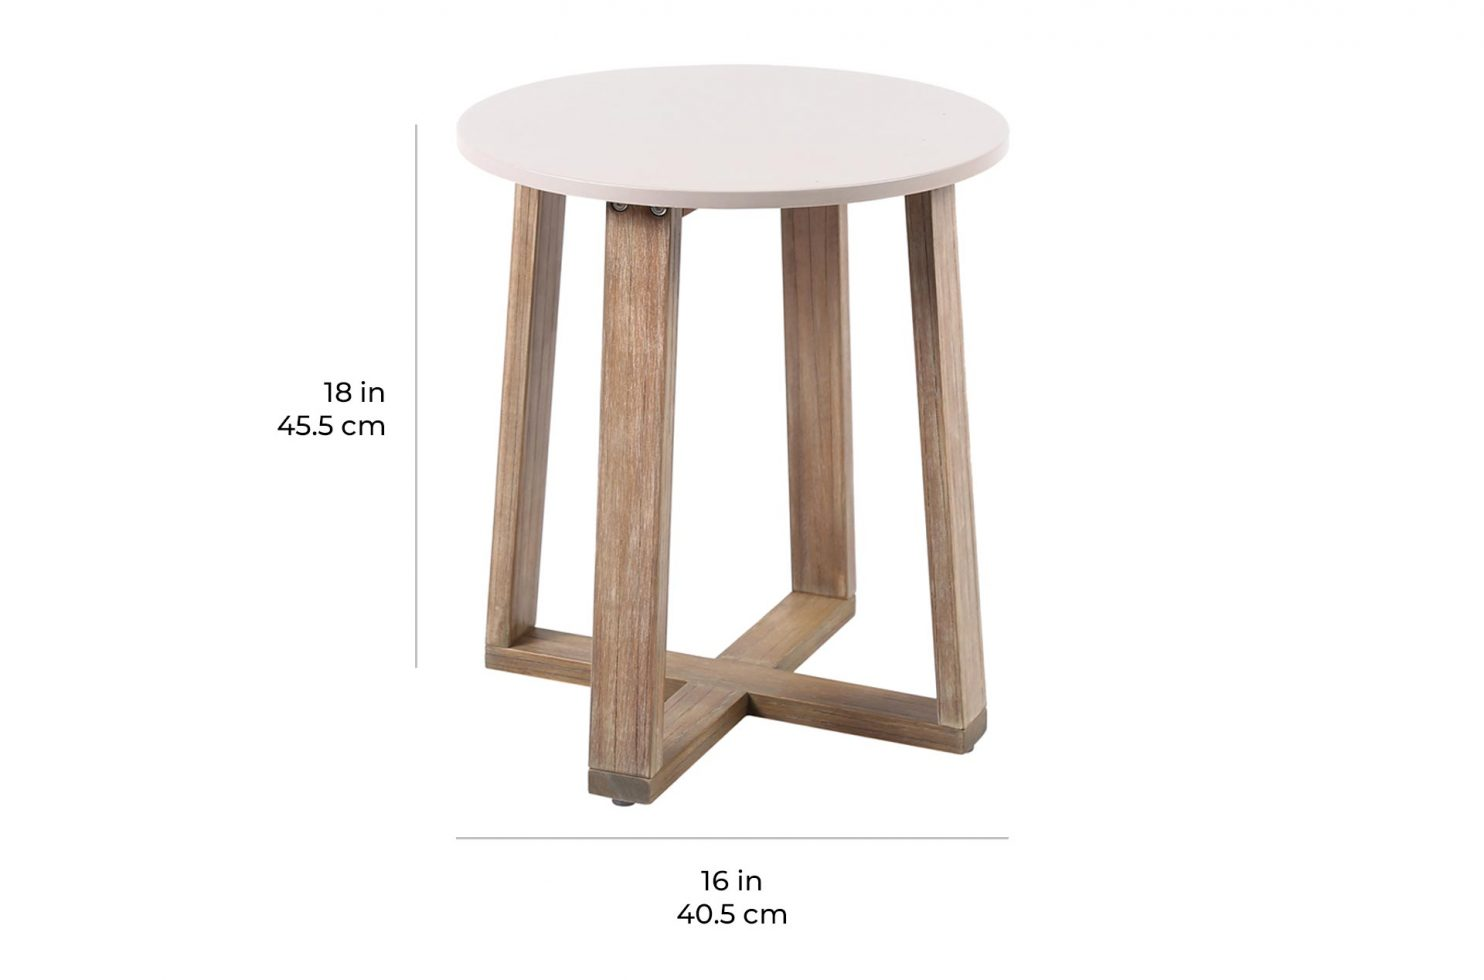 wings accent table E50499319 scale dims